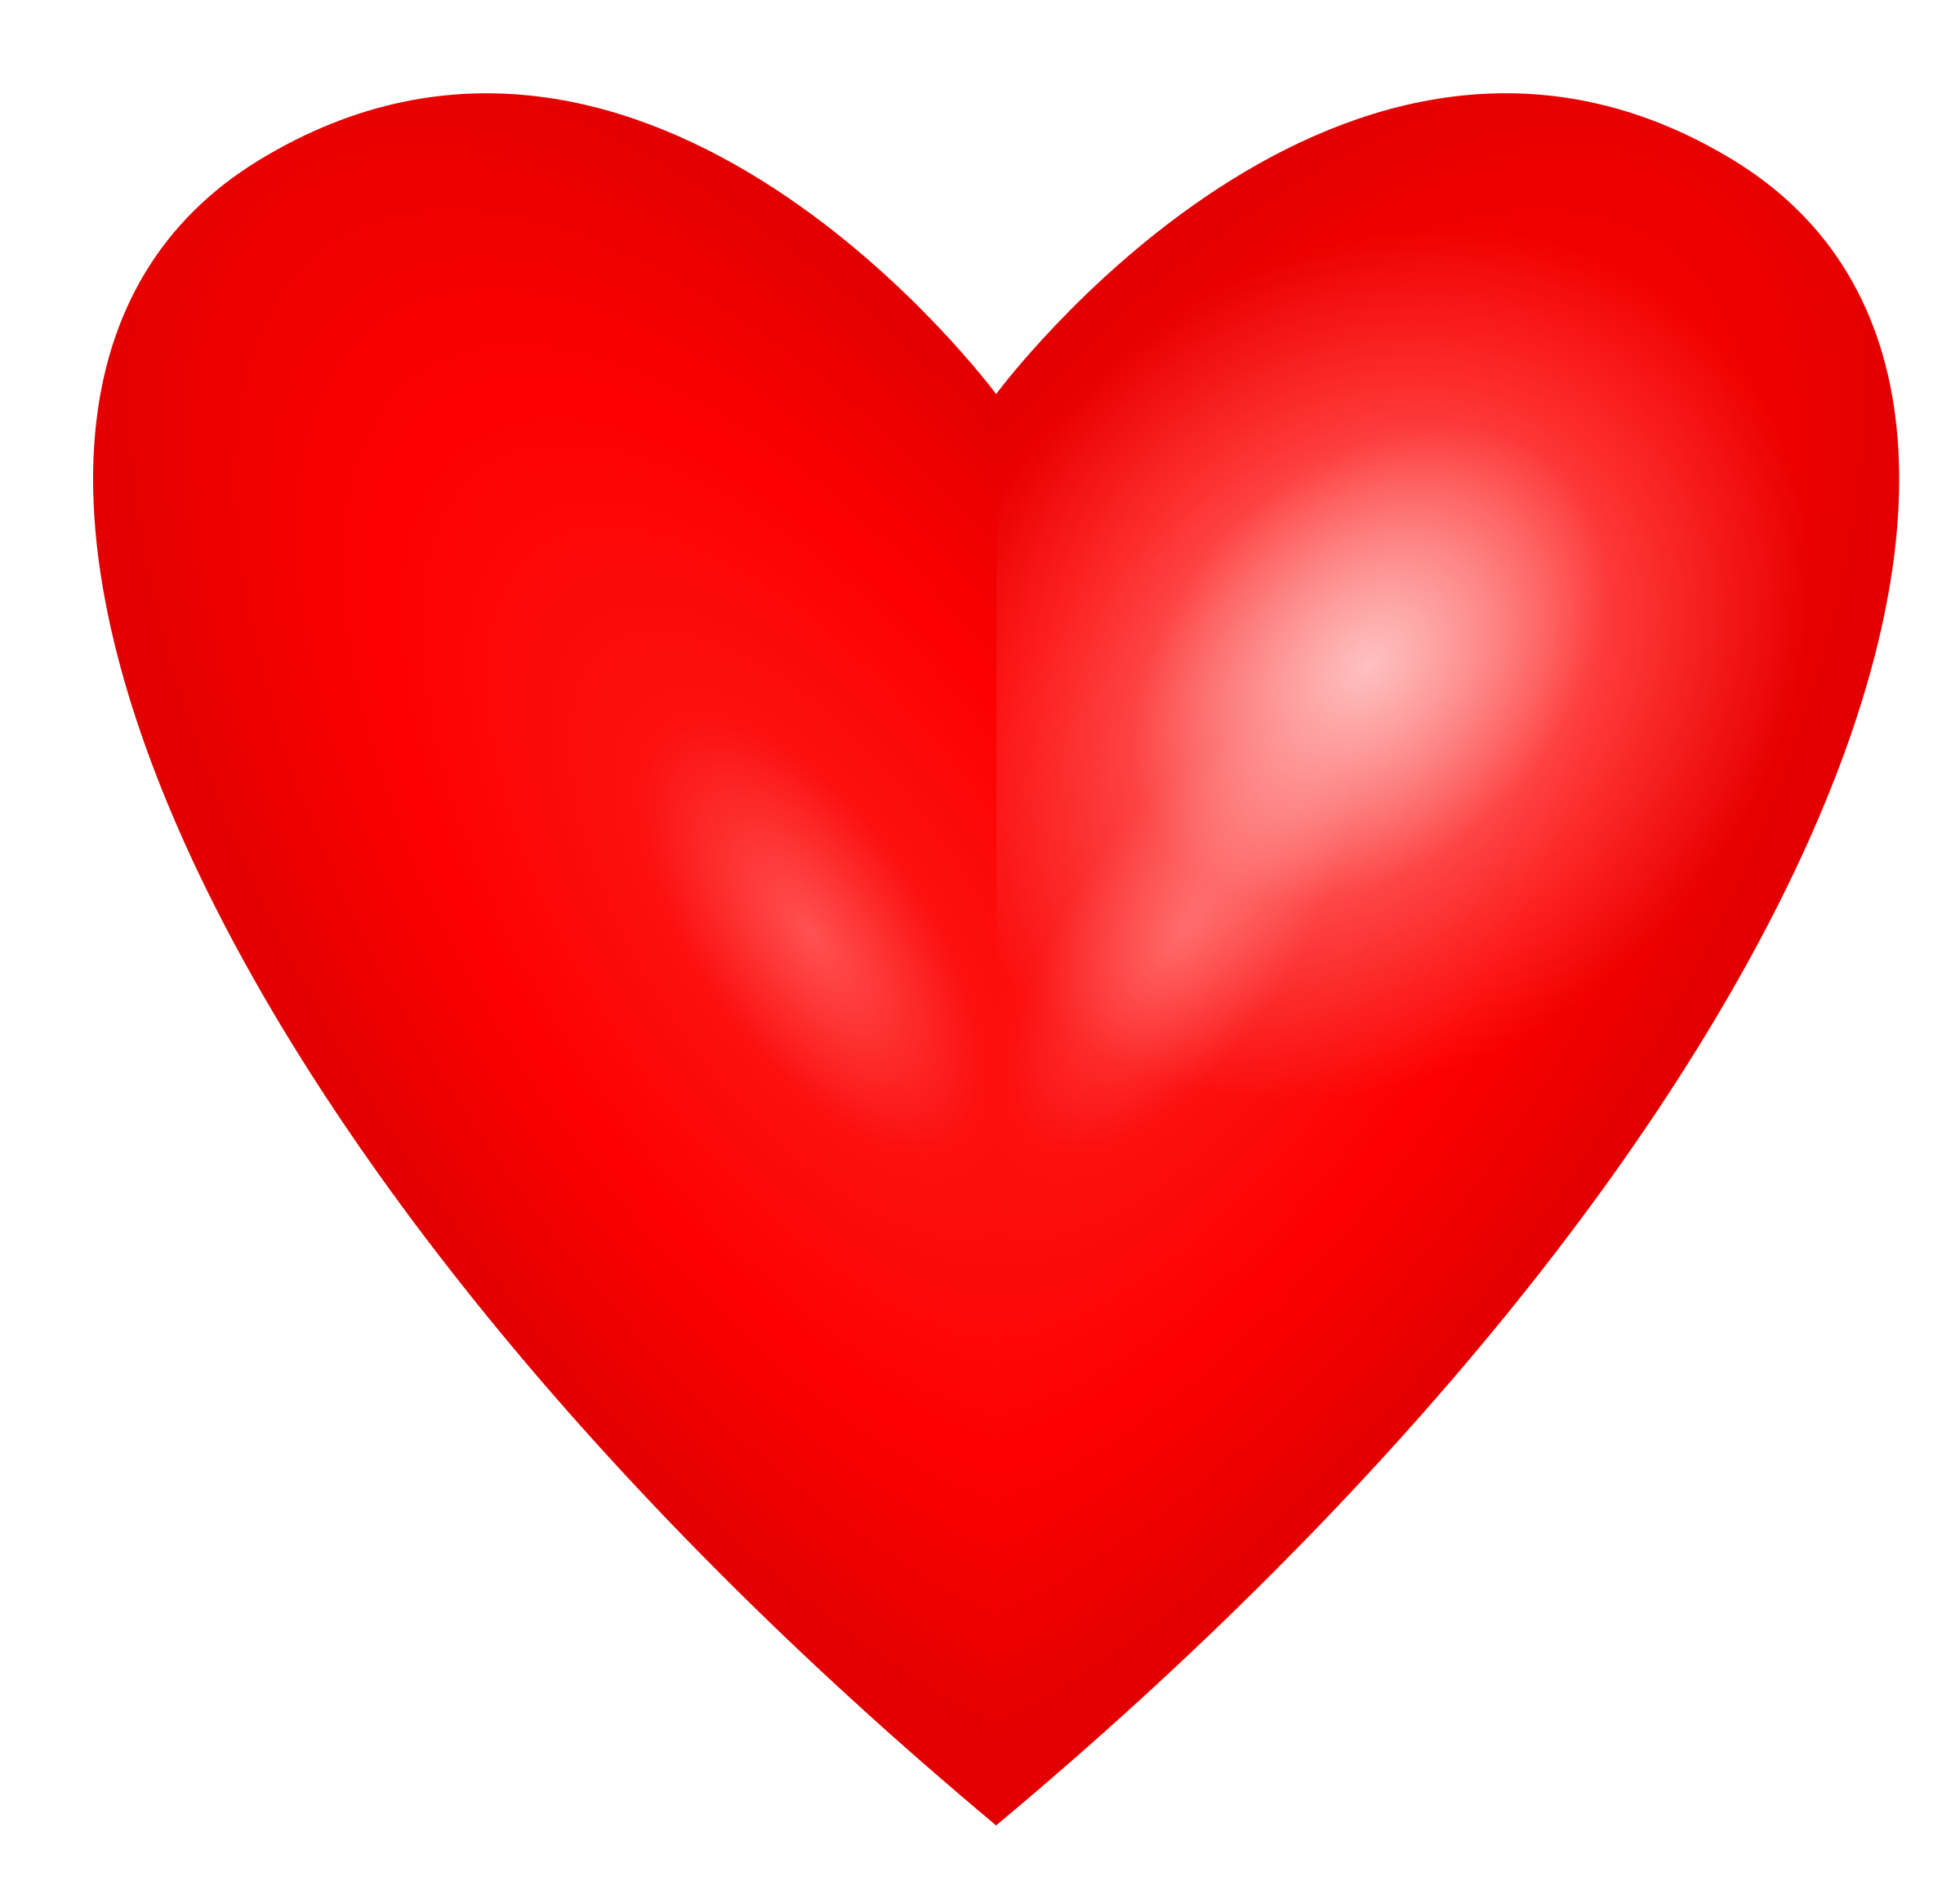 love heart by GMcGlinn